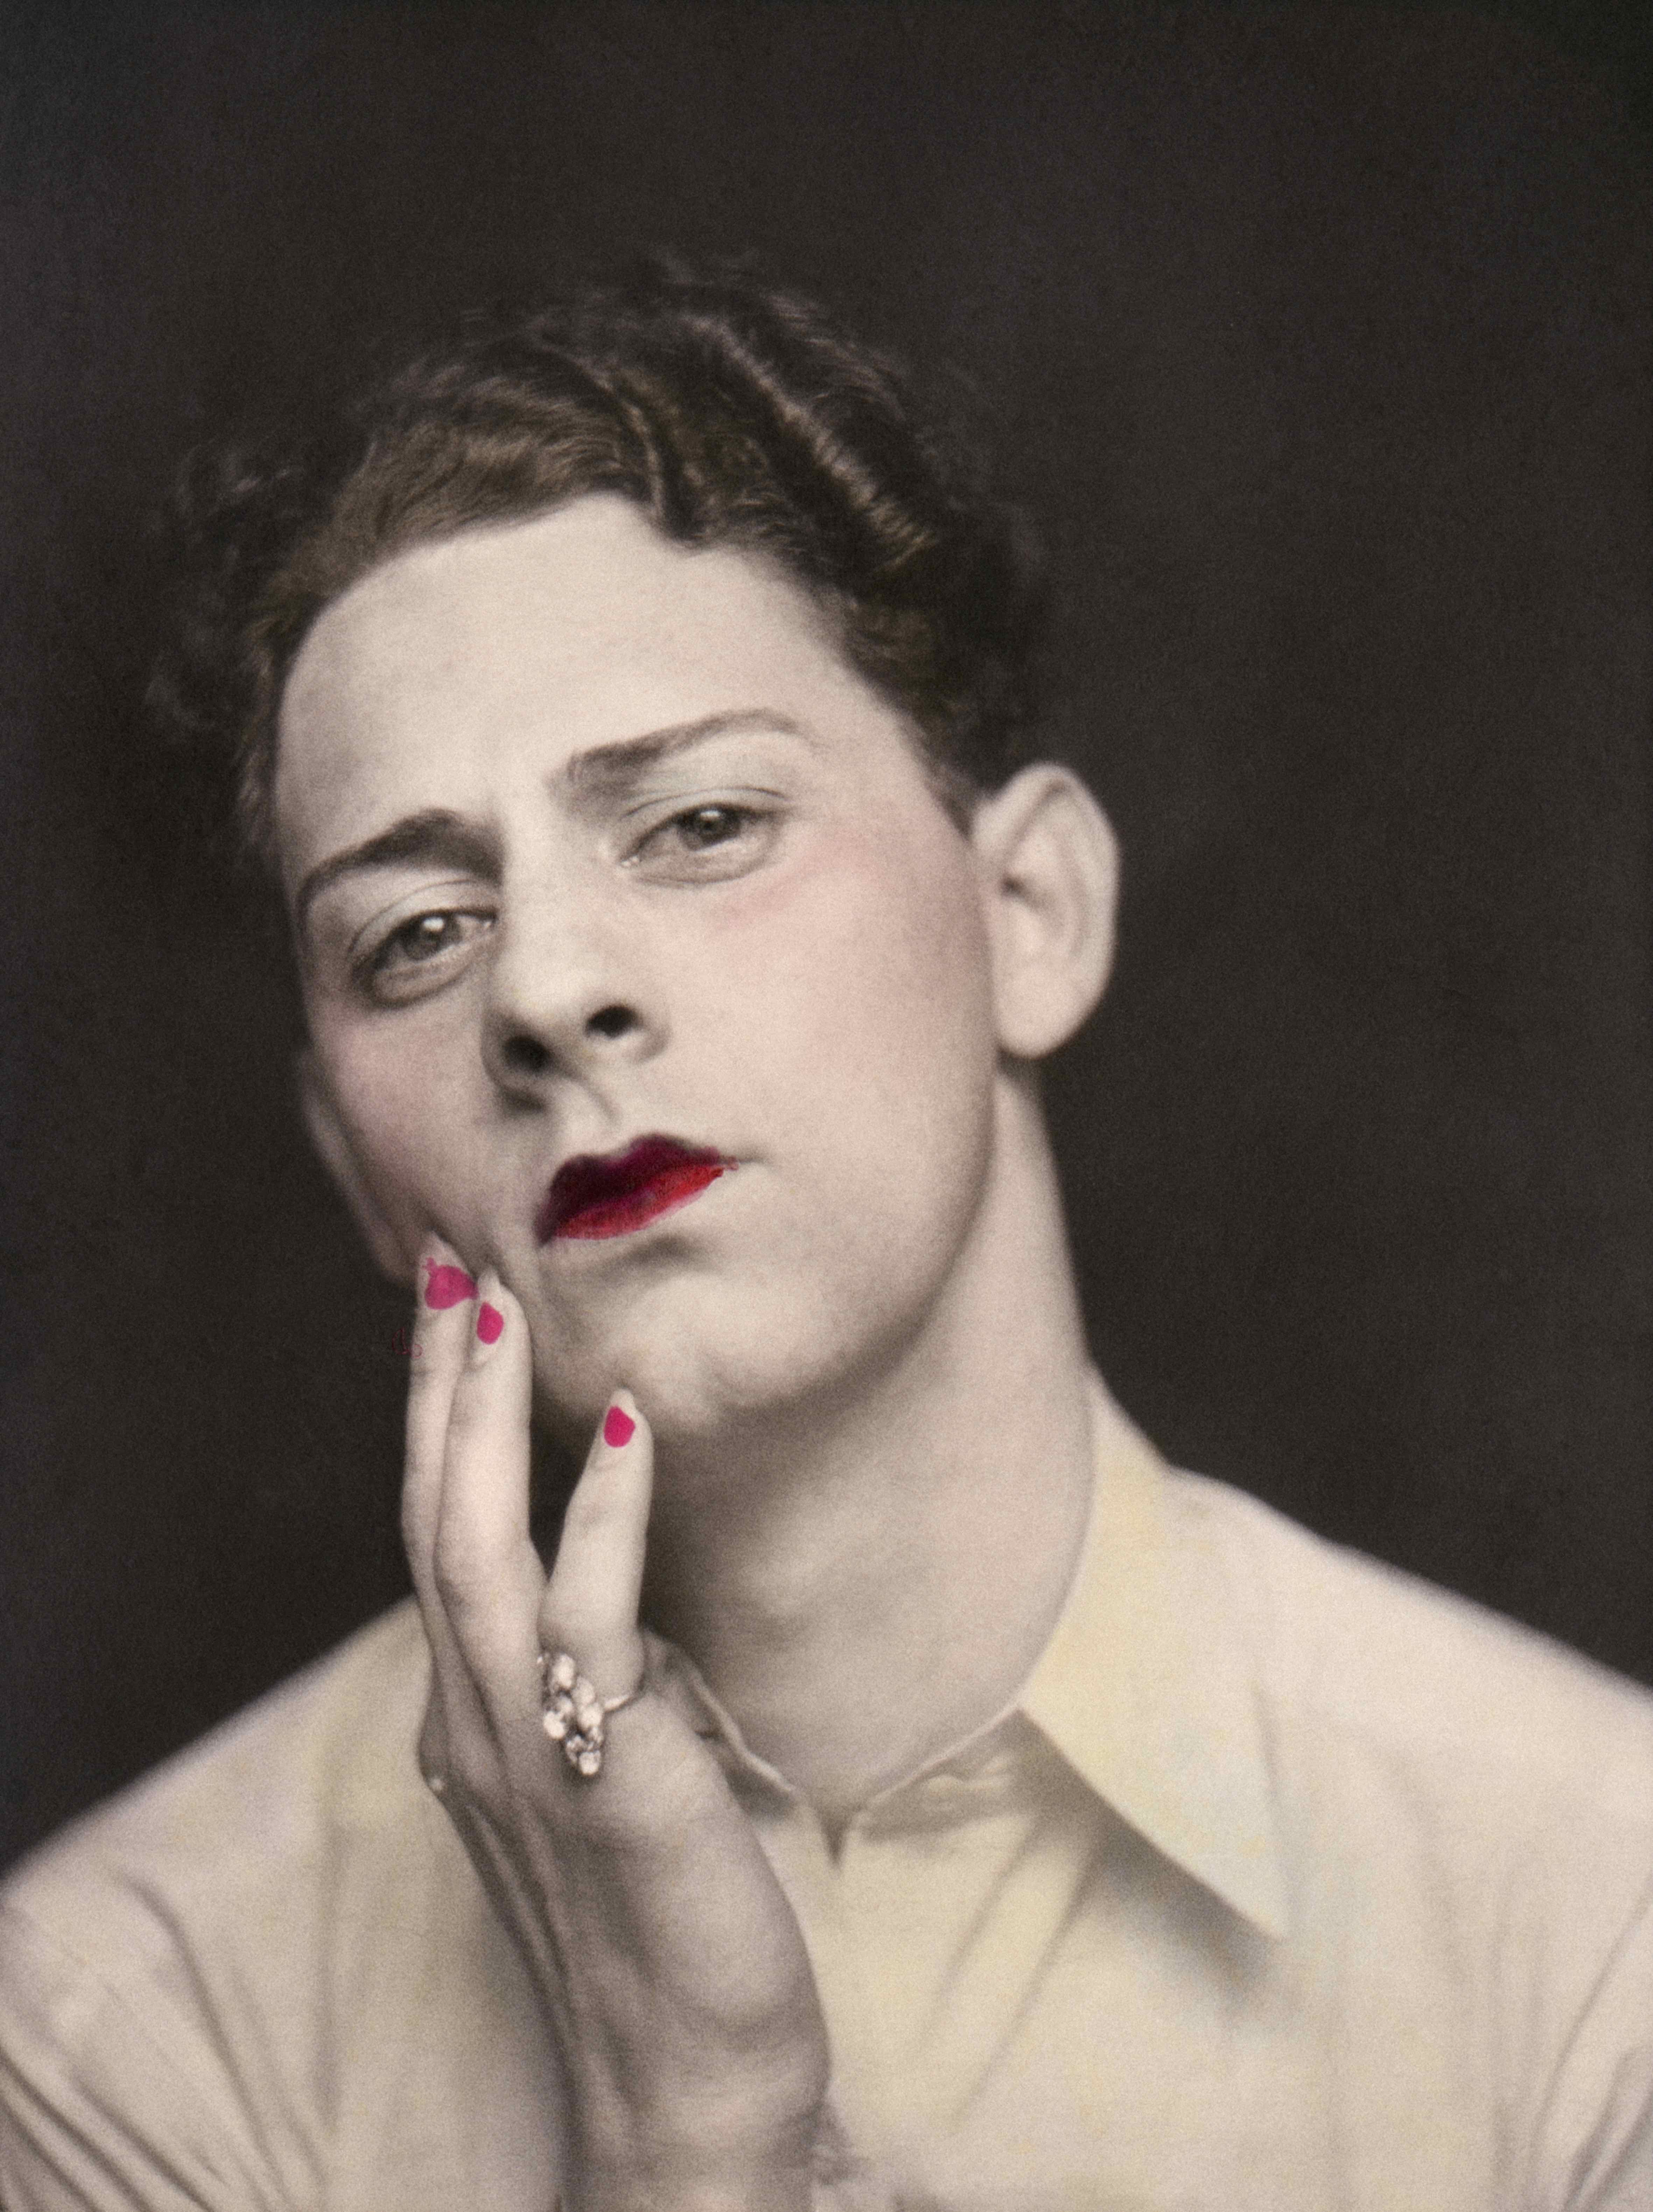 Man in makeup wearing ring. Photograph from a photo booth, with highlights of colour. United States, circa 1920.